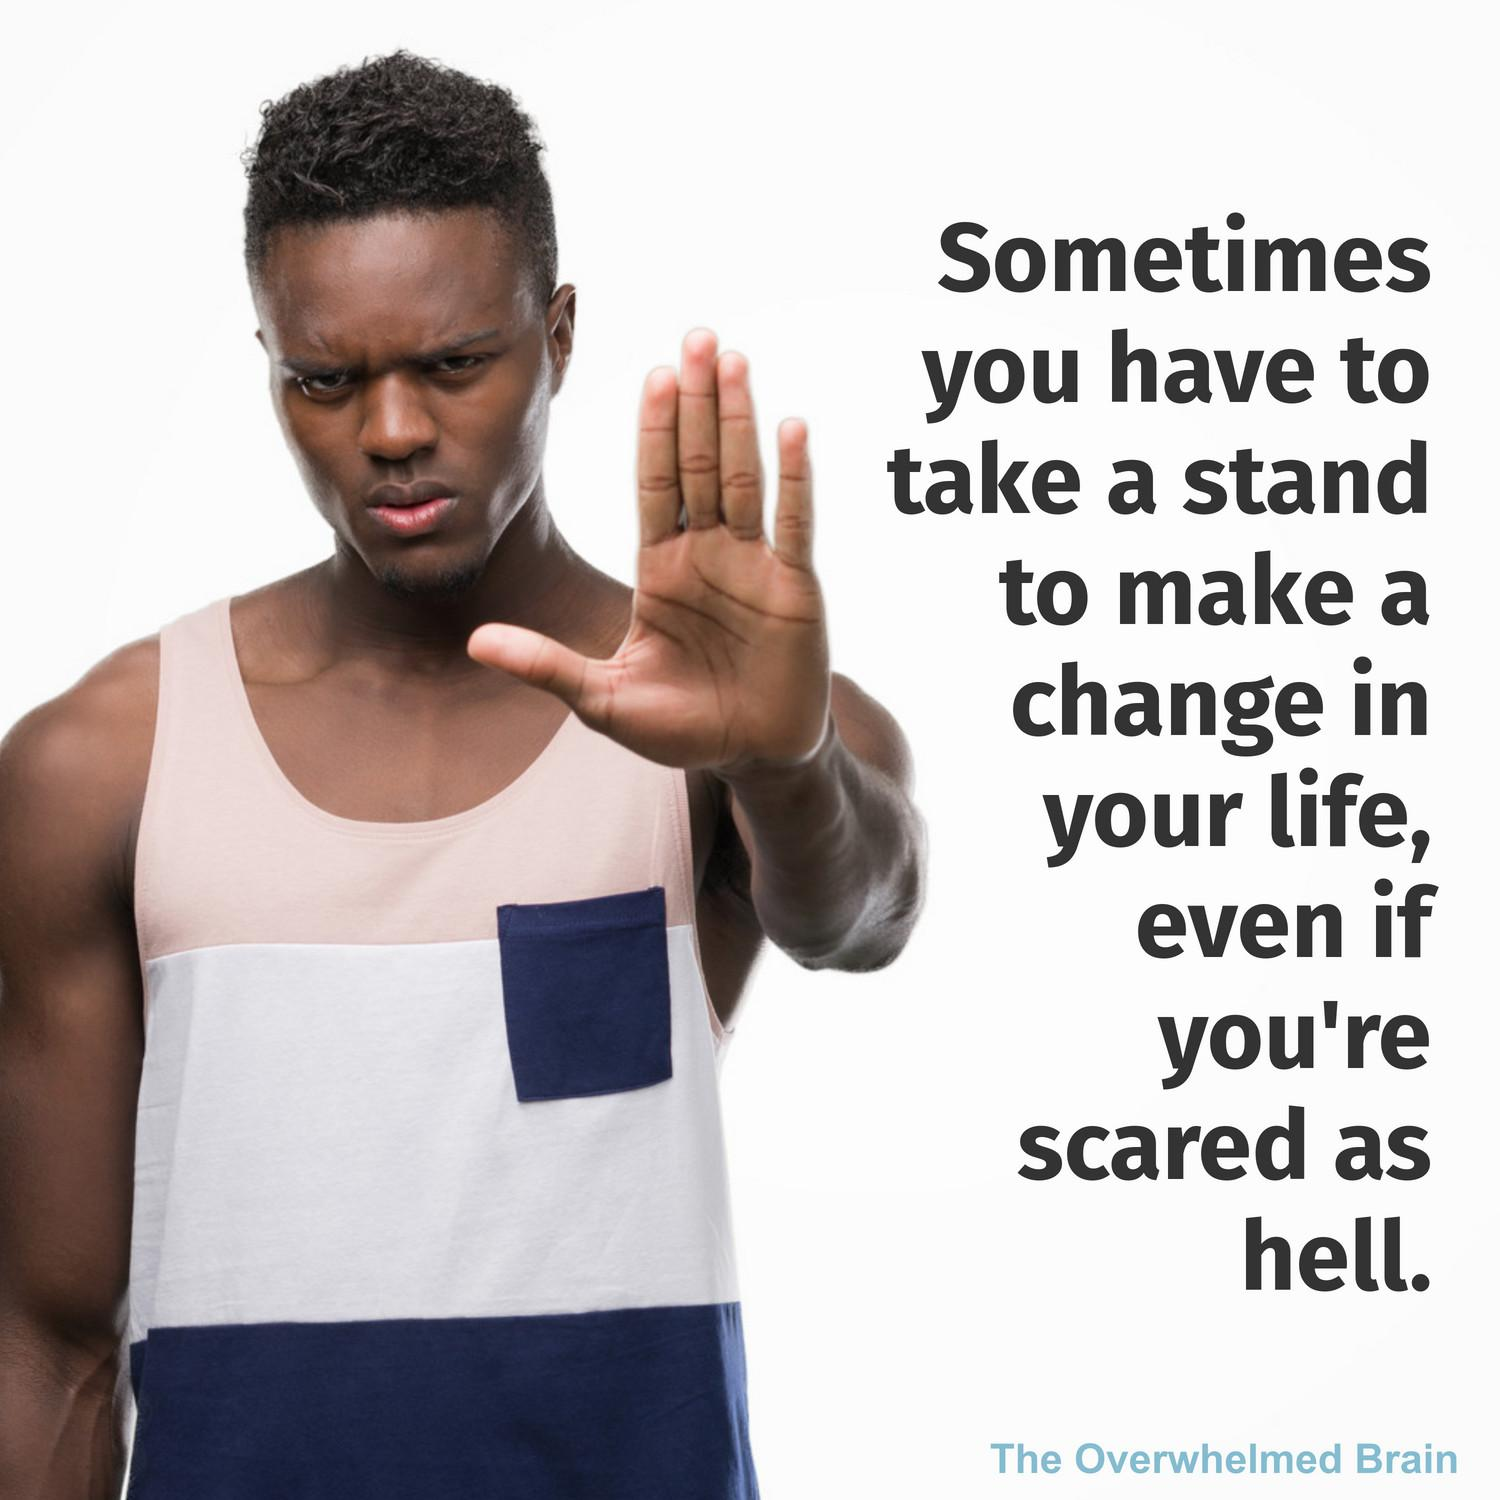 Sometimes you have to take a stand to make a change in your life, even if you're scared as hell.